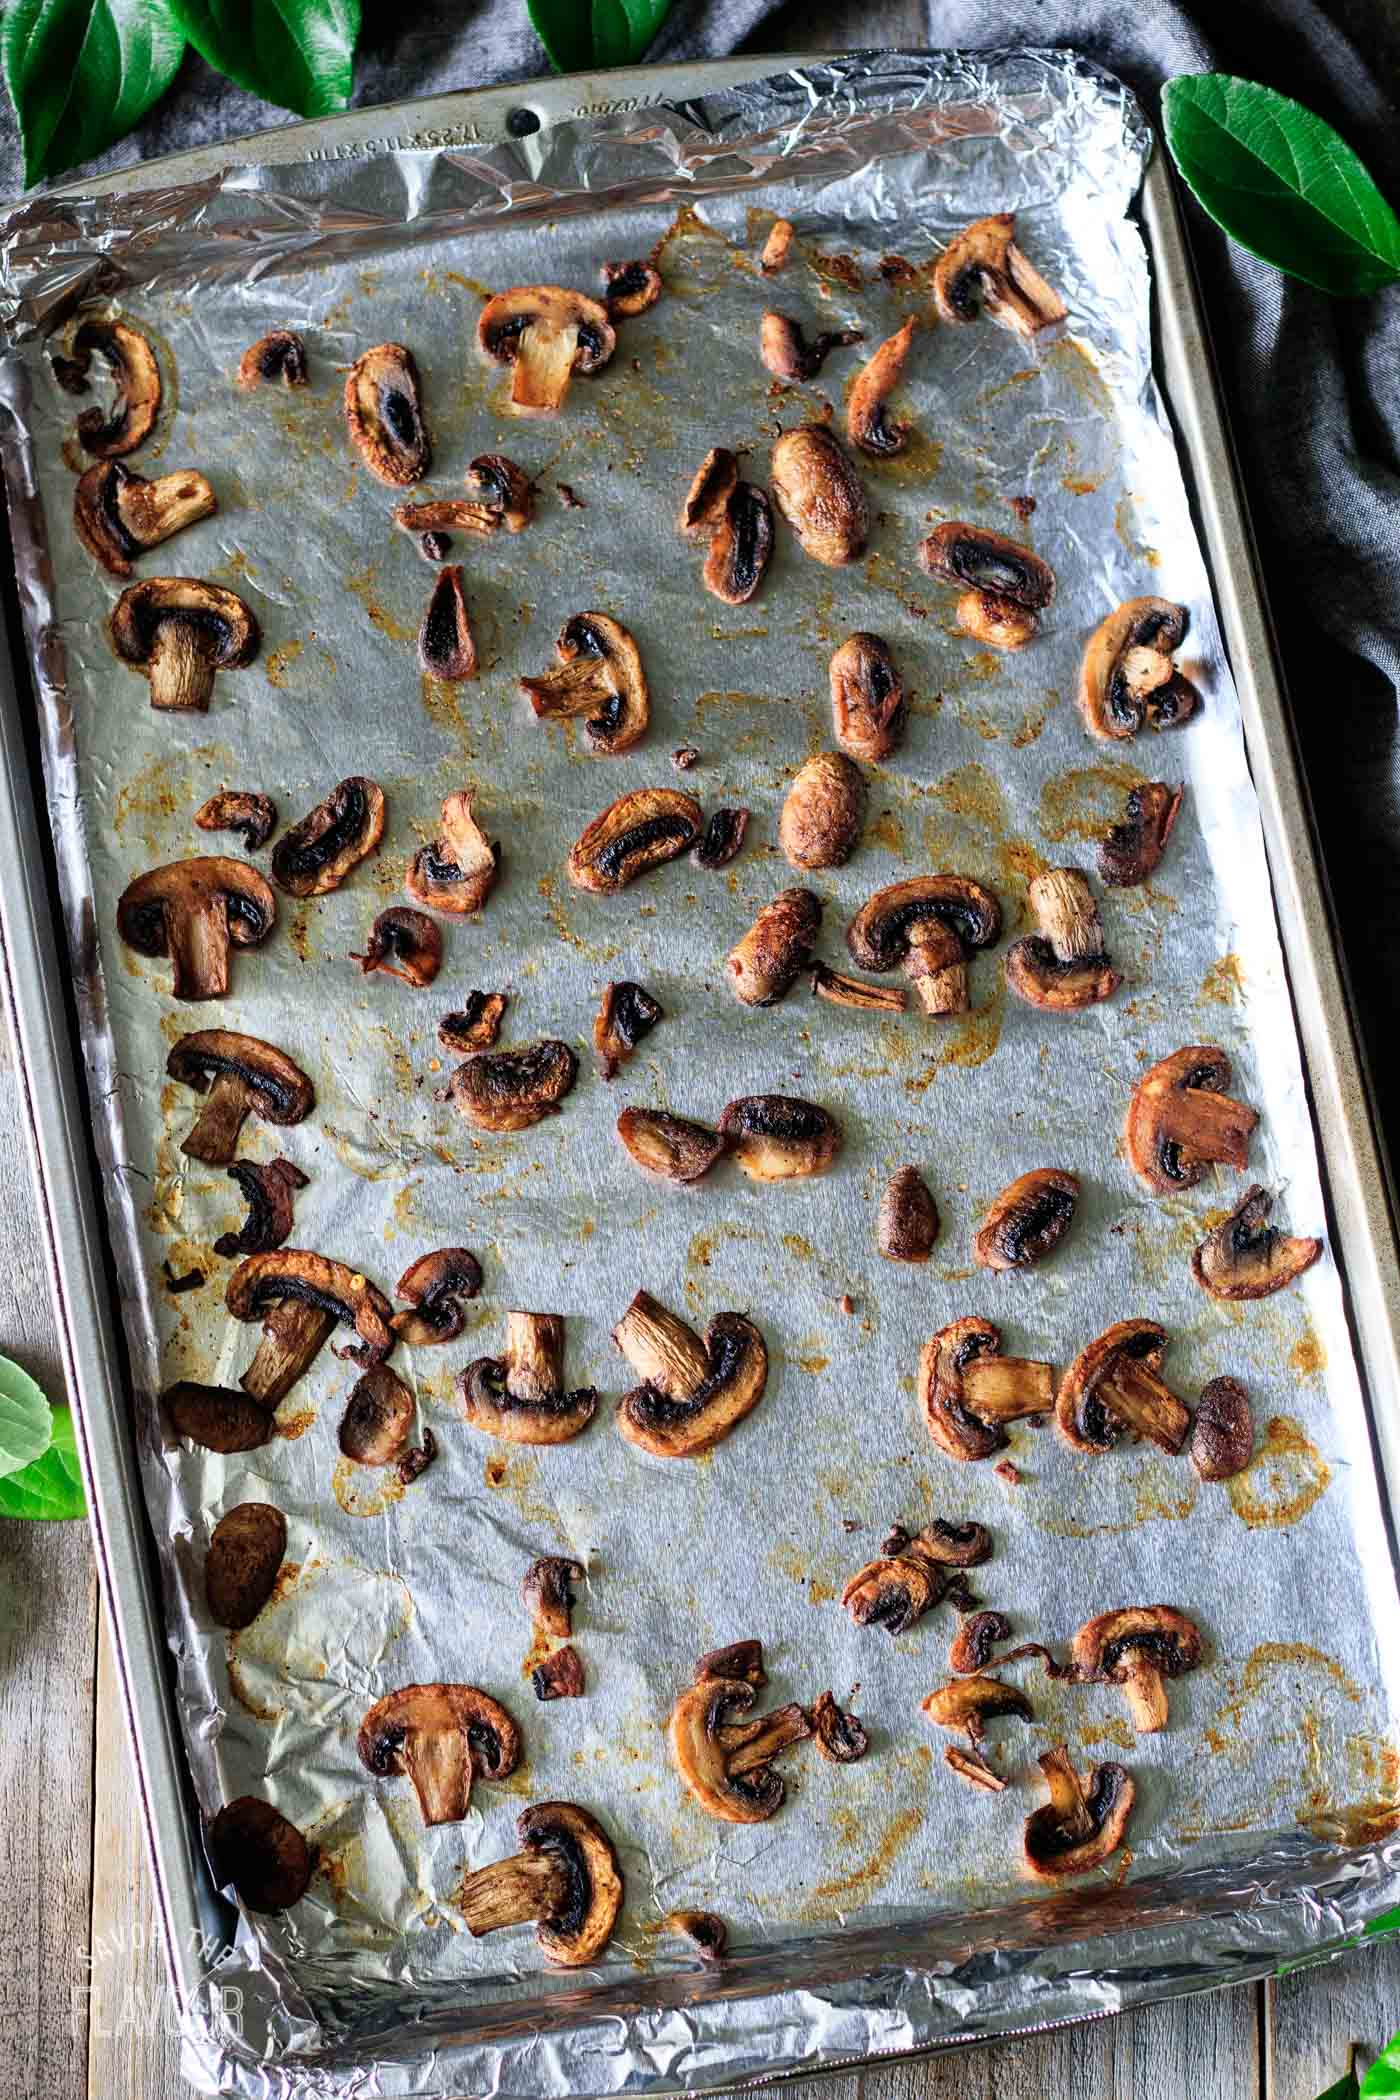 roasted mushrooms on a tray